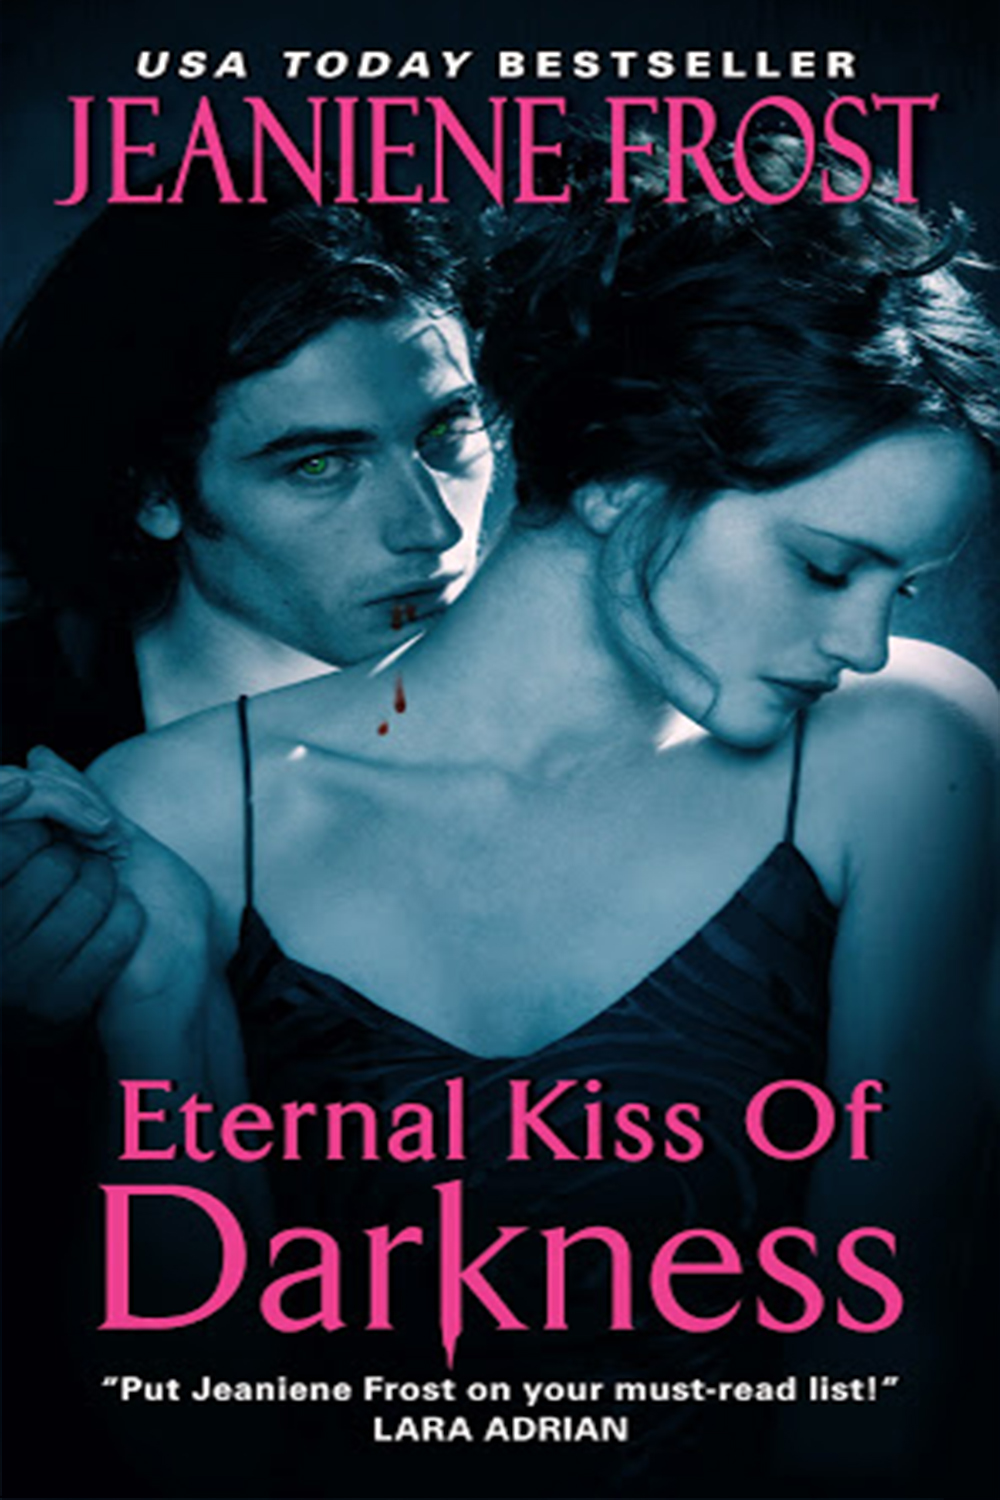 S1 E12 Eternal Kiss of Darkness by Jeaniene Frost